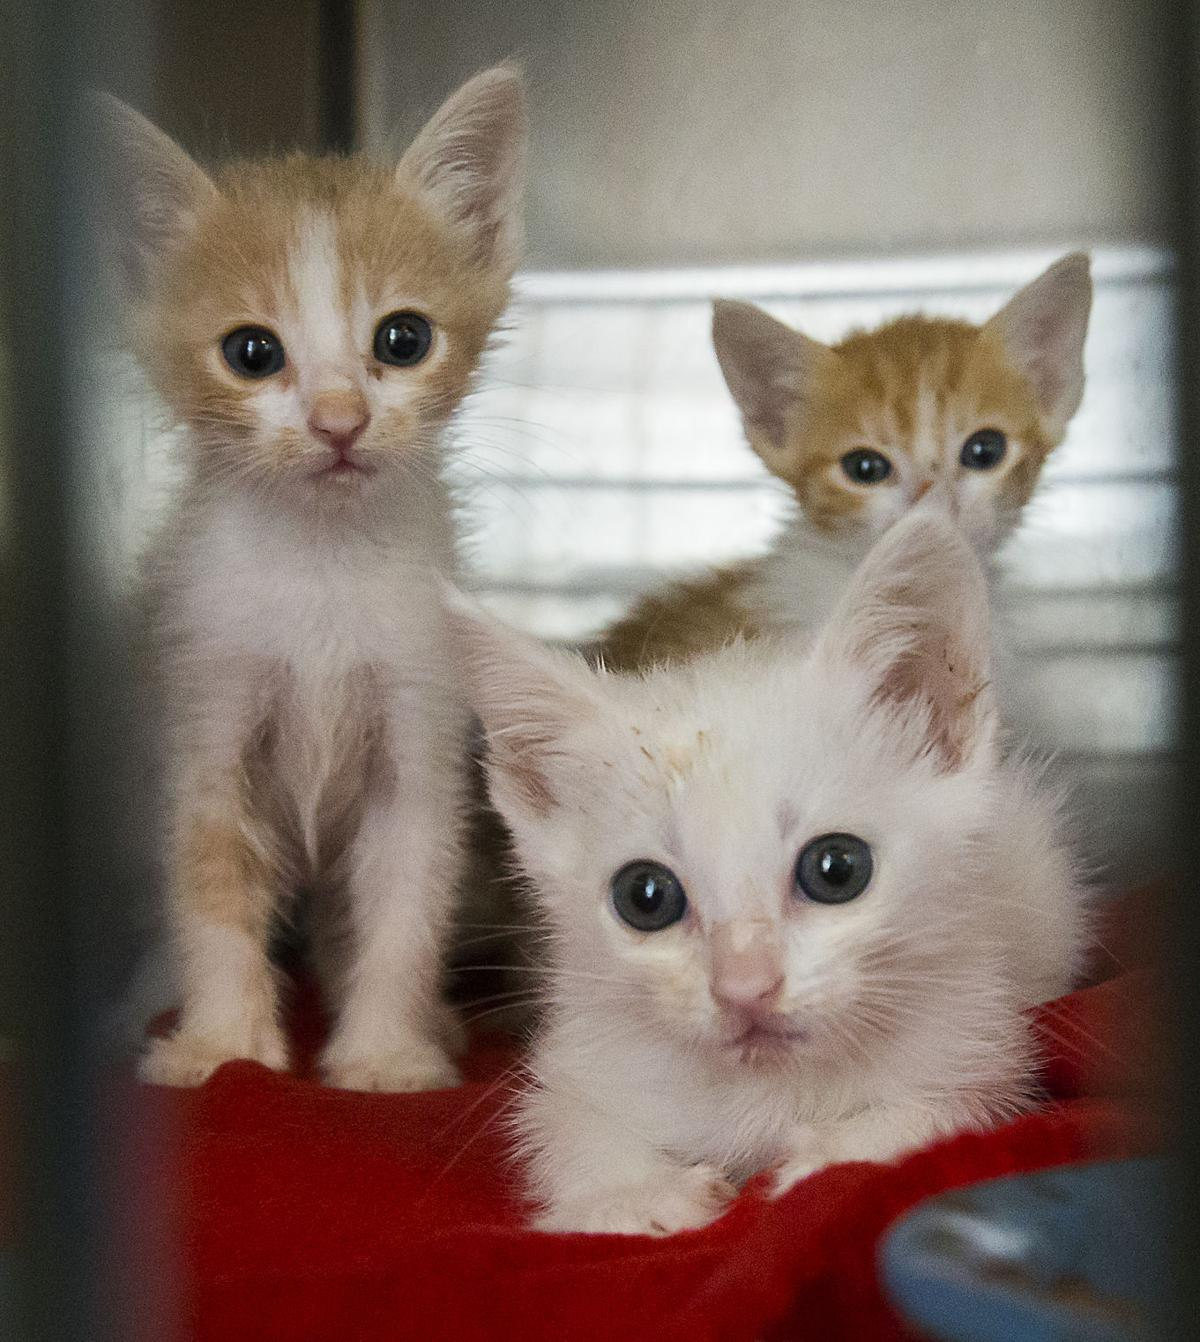 Kern County Animal Services Opened Its New Kitten Nursery Last Week Kittens Too Young For Adoption Like These Three Litter Mates Will Have The Chance To